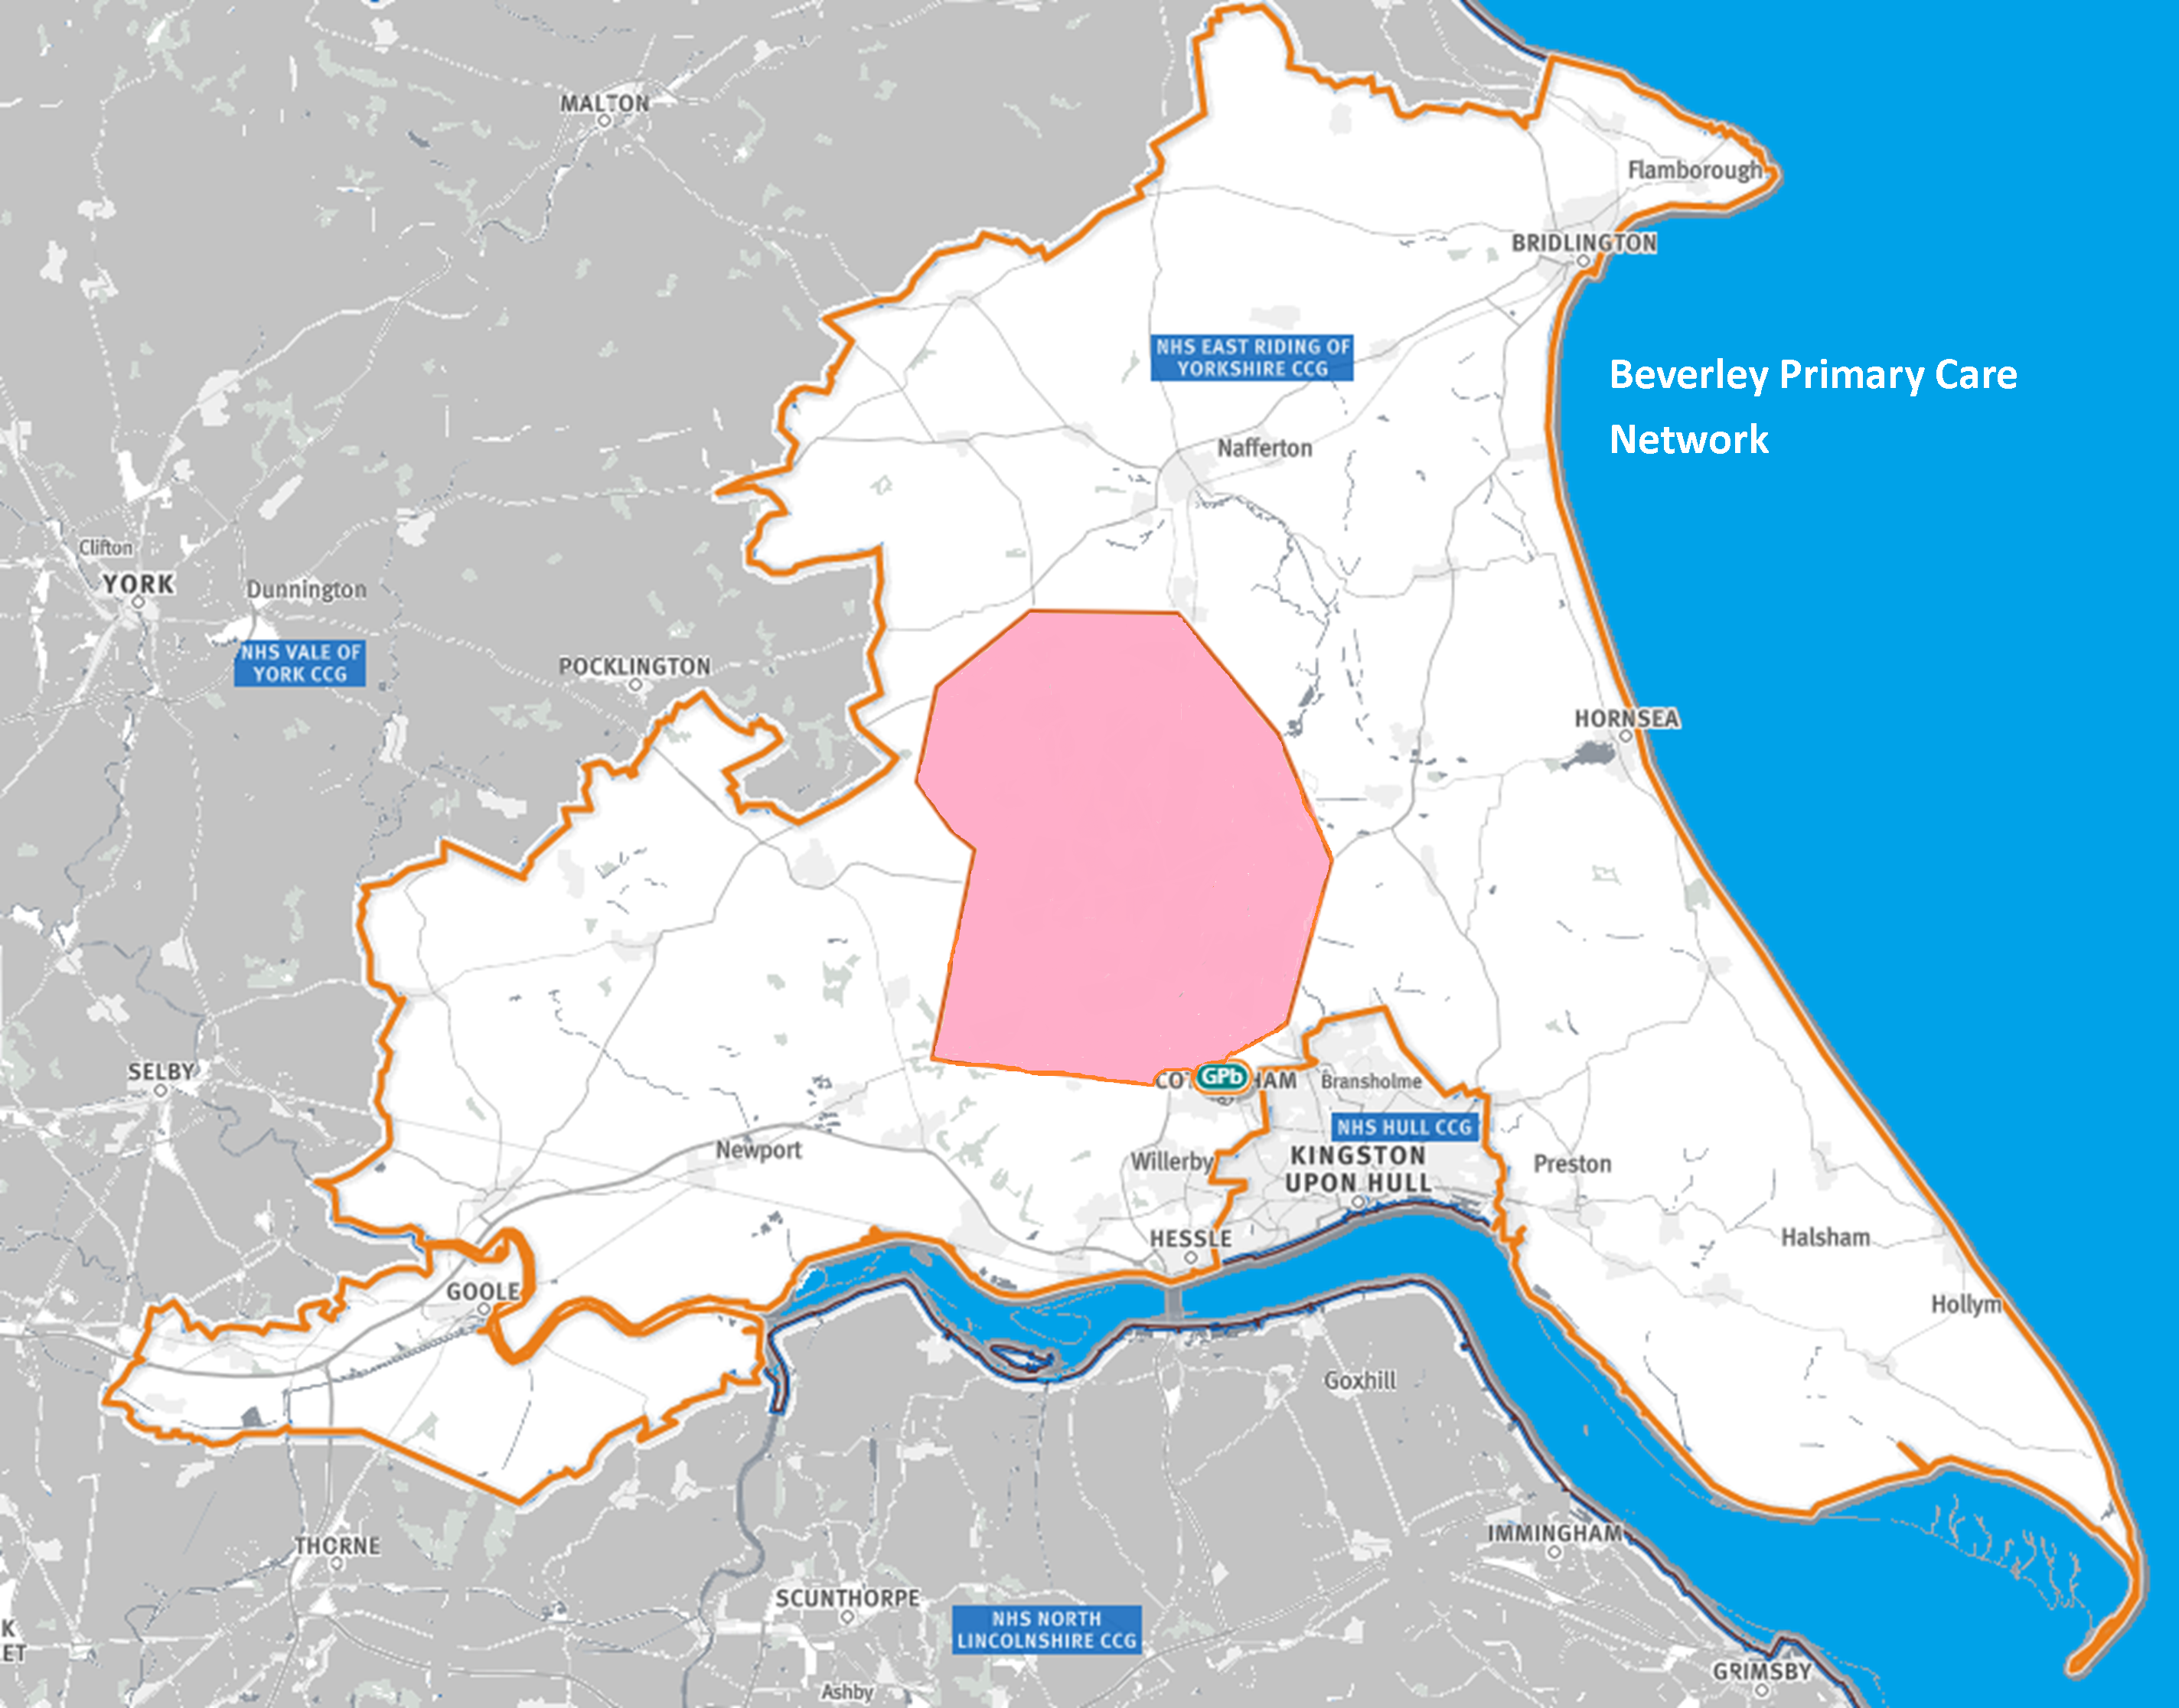 Map of the area covered by the Beverley PCN